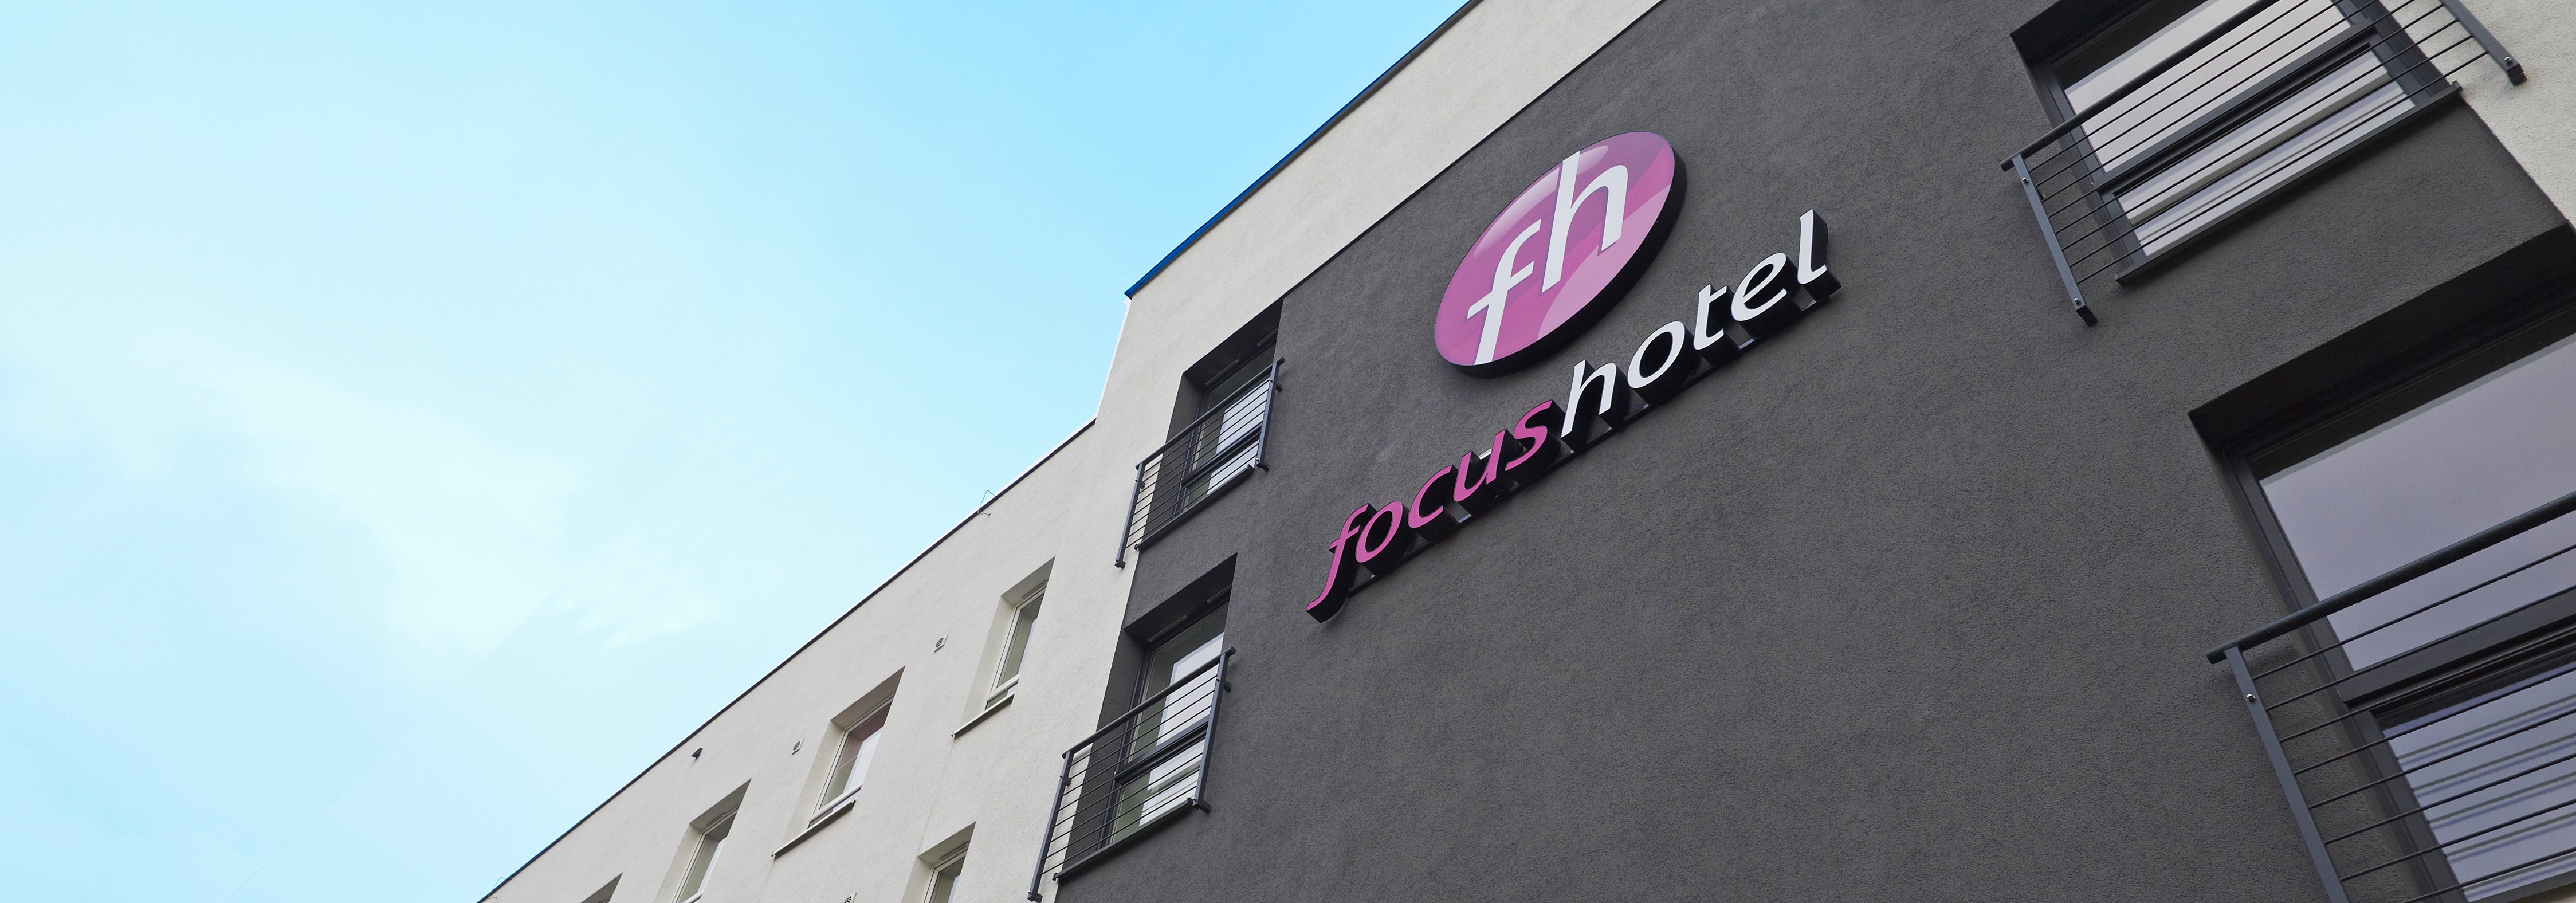 Focus Hotels closes the year with industry awards